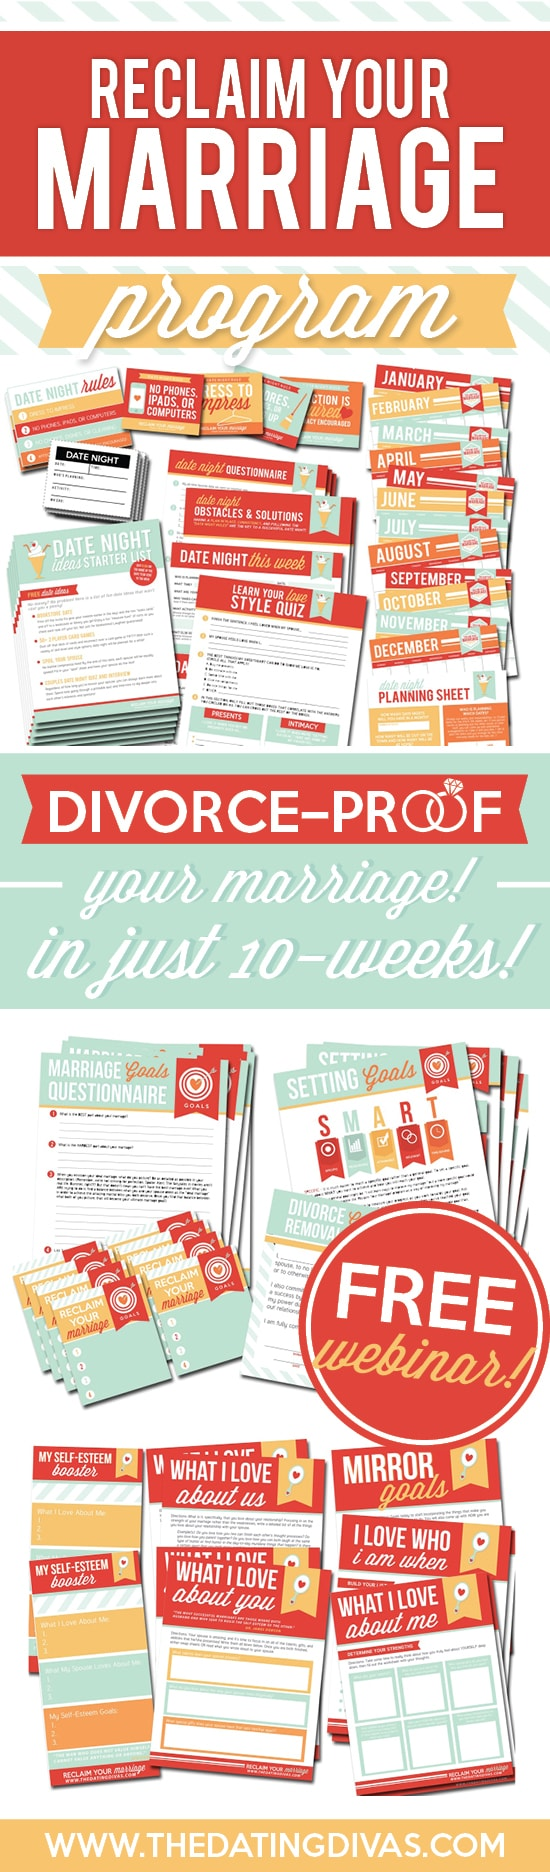 Divorce-Proof Your Marriage with the Reclaim Your Marriage Program